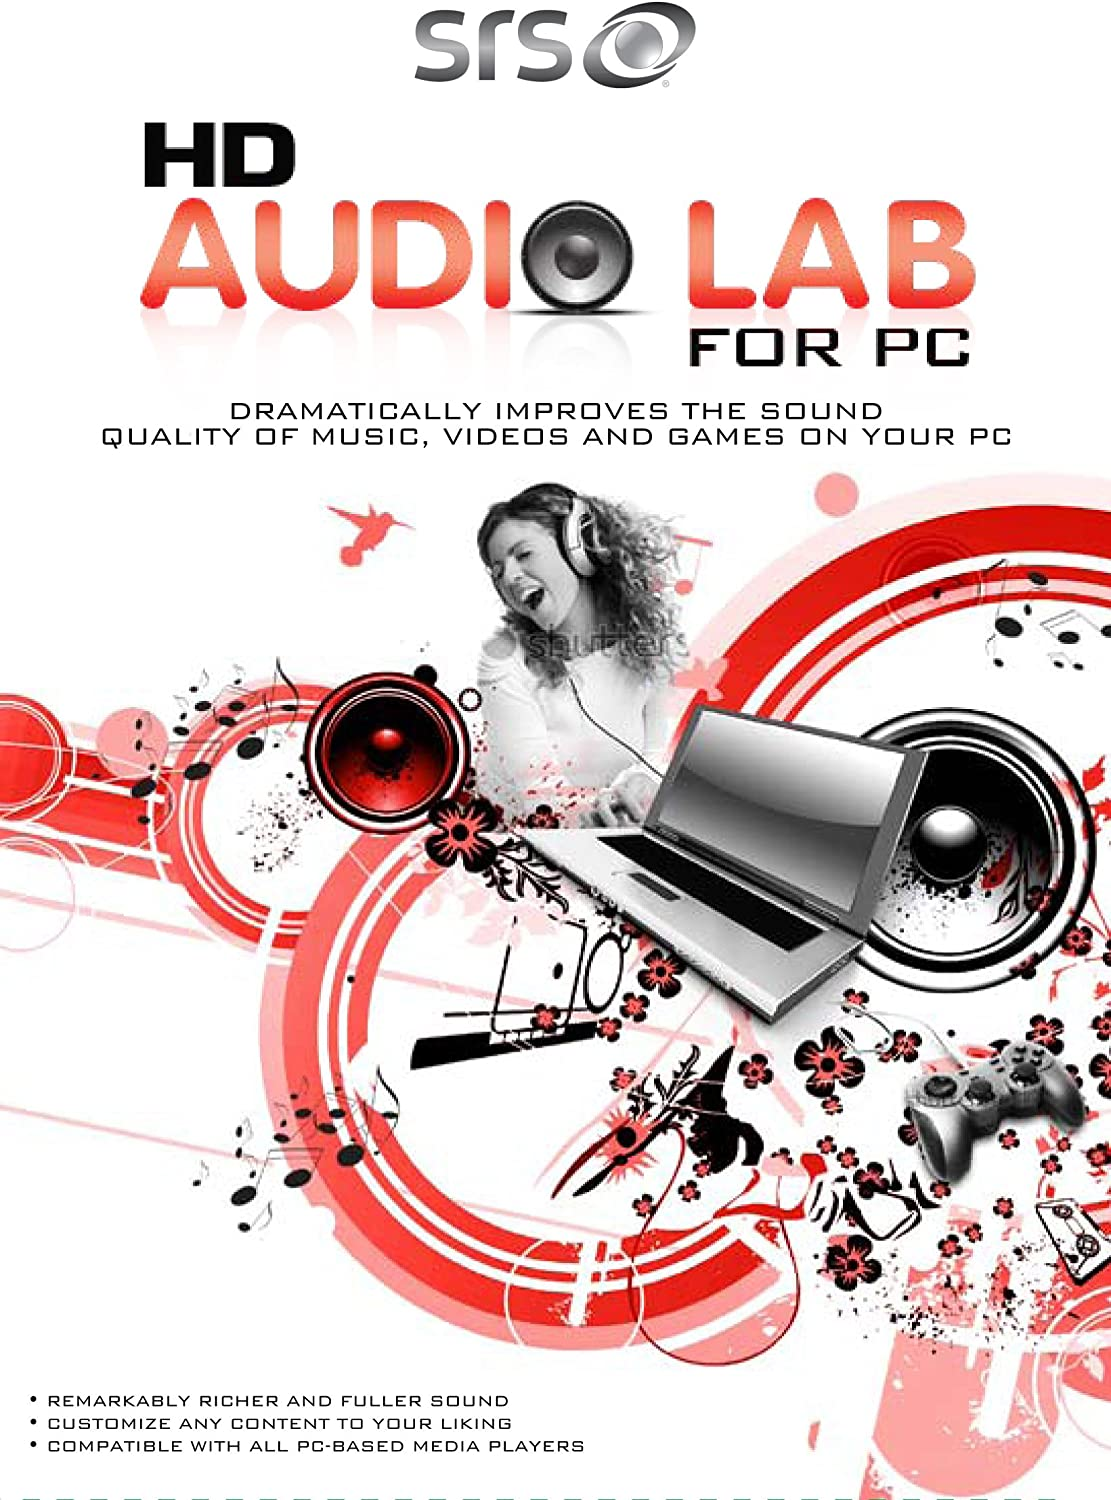 HD Audio Lab for PC [Download]